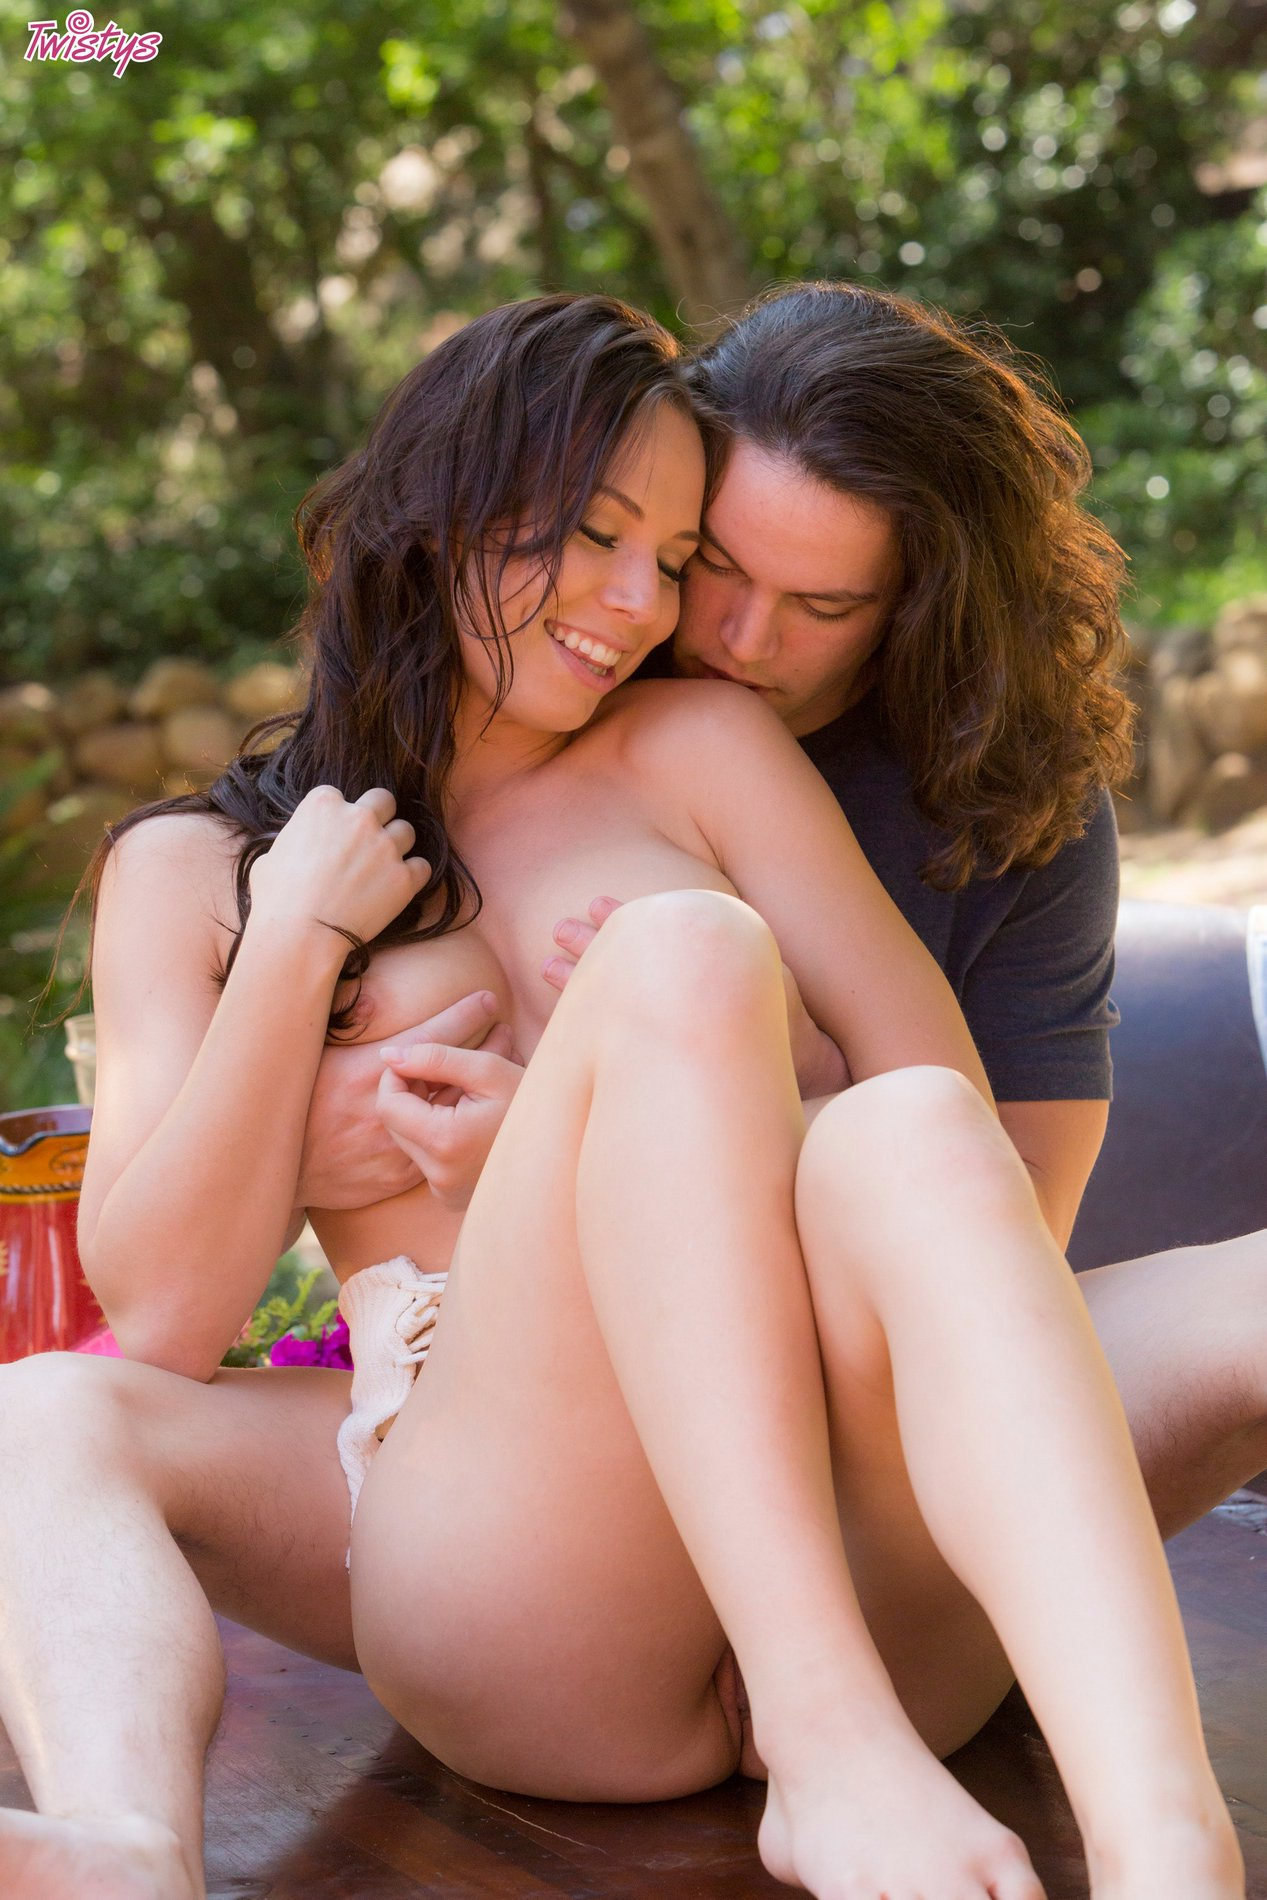 Hot Beauty Aidra Fox Making Love With Her Boyfriend Outdoor 5